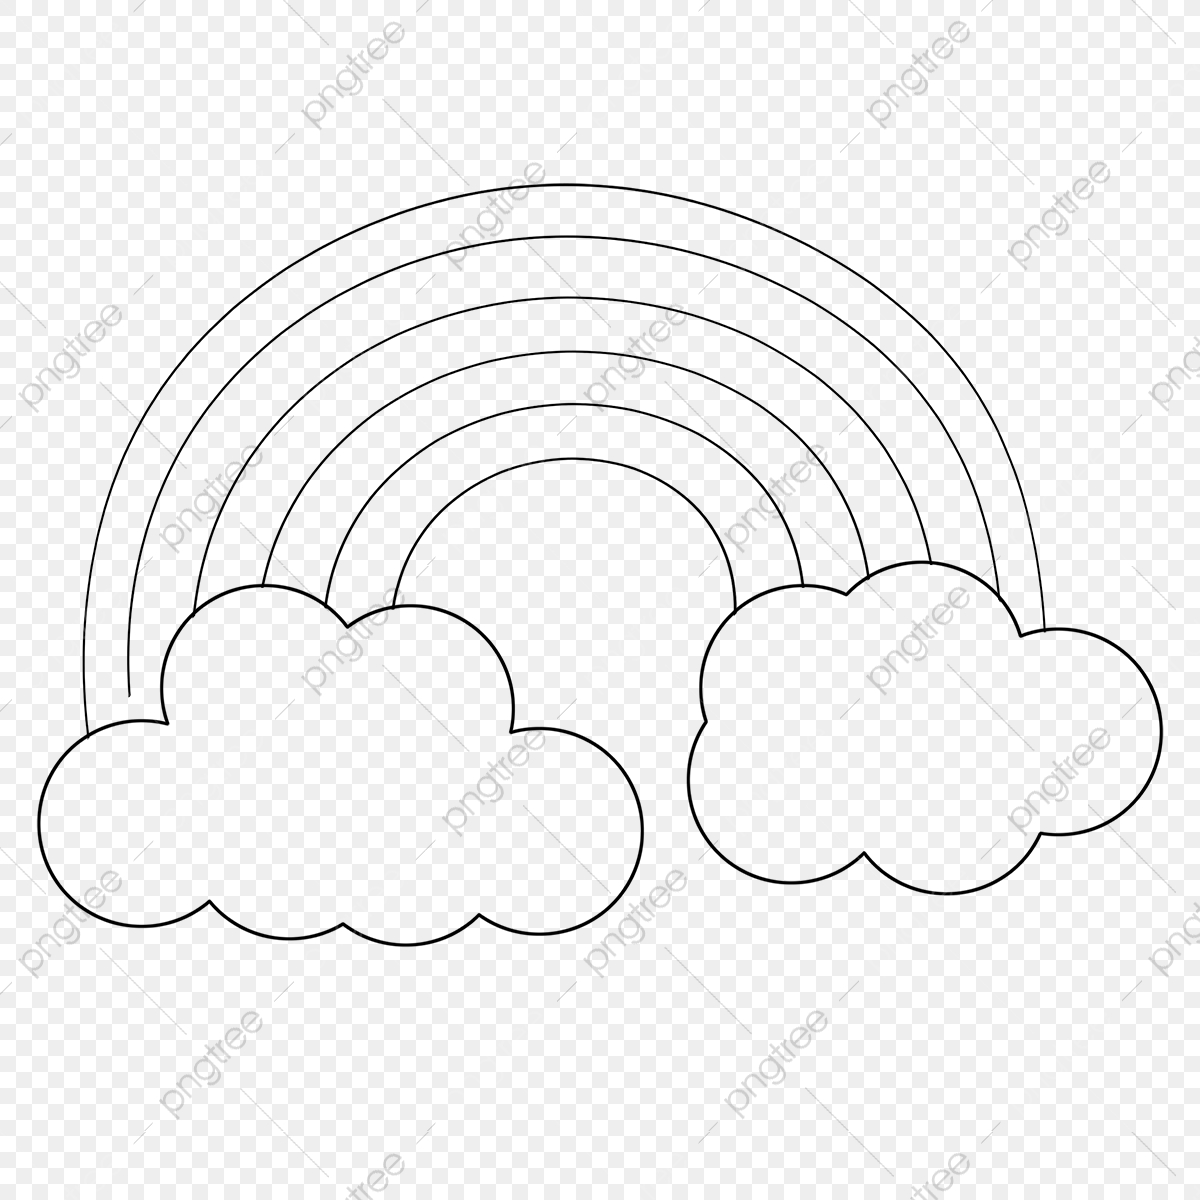 Rainbow Clip Art Black And White Free Illustration Rainbow Clipart Free Illustration Png Transparent Clipart Image And Psd File For Free Download